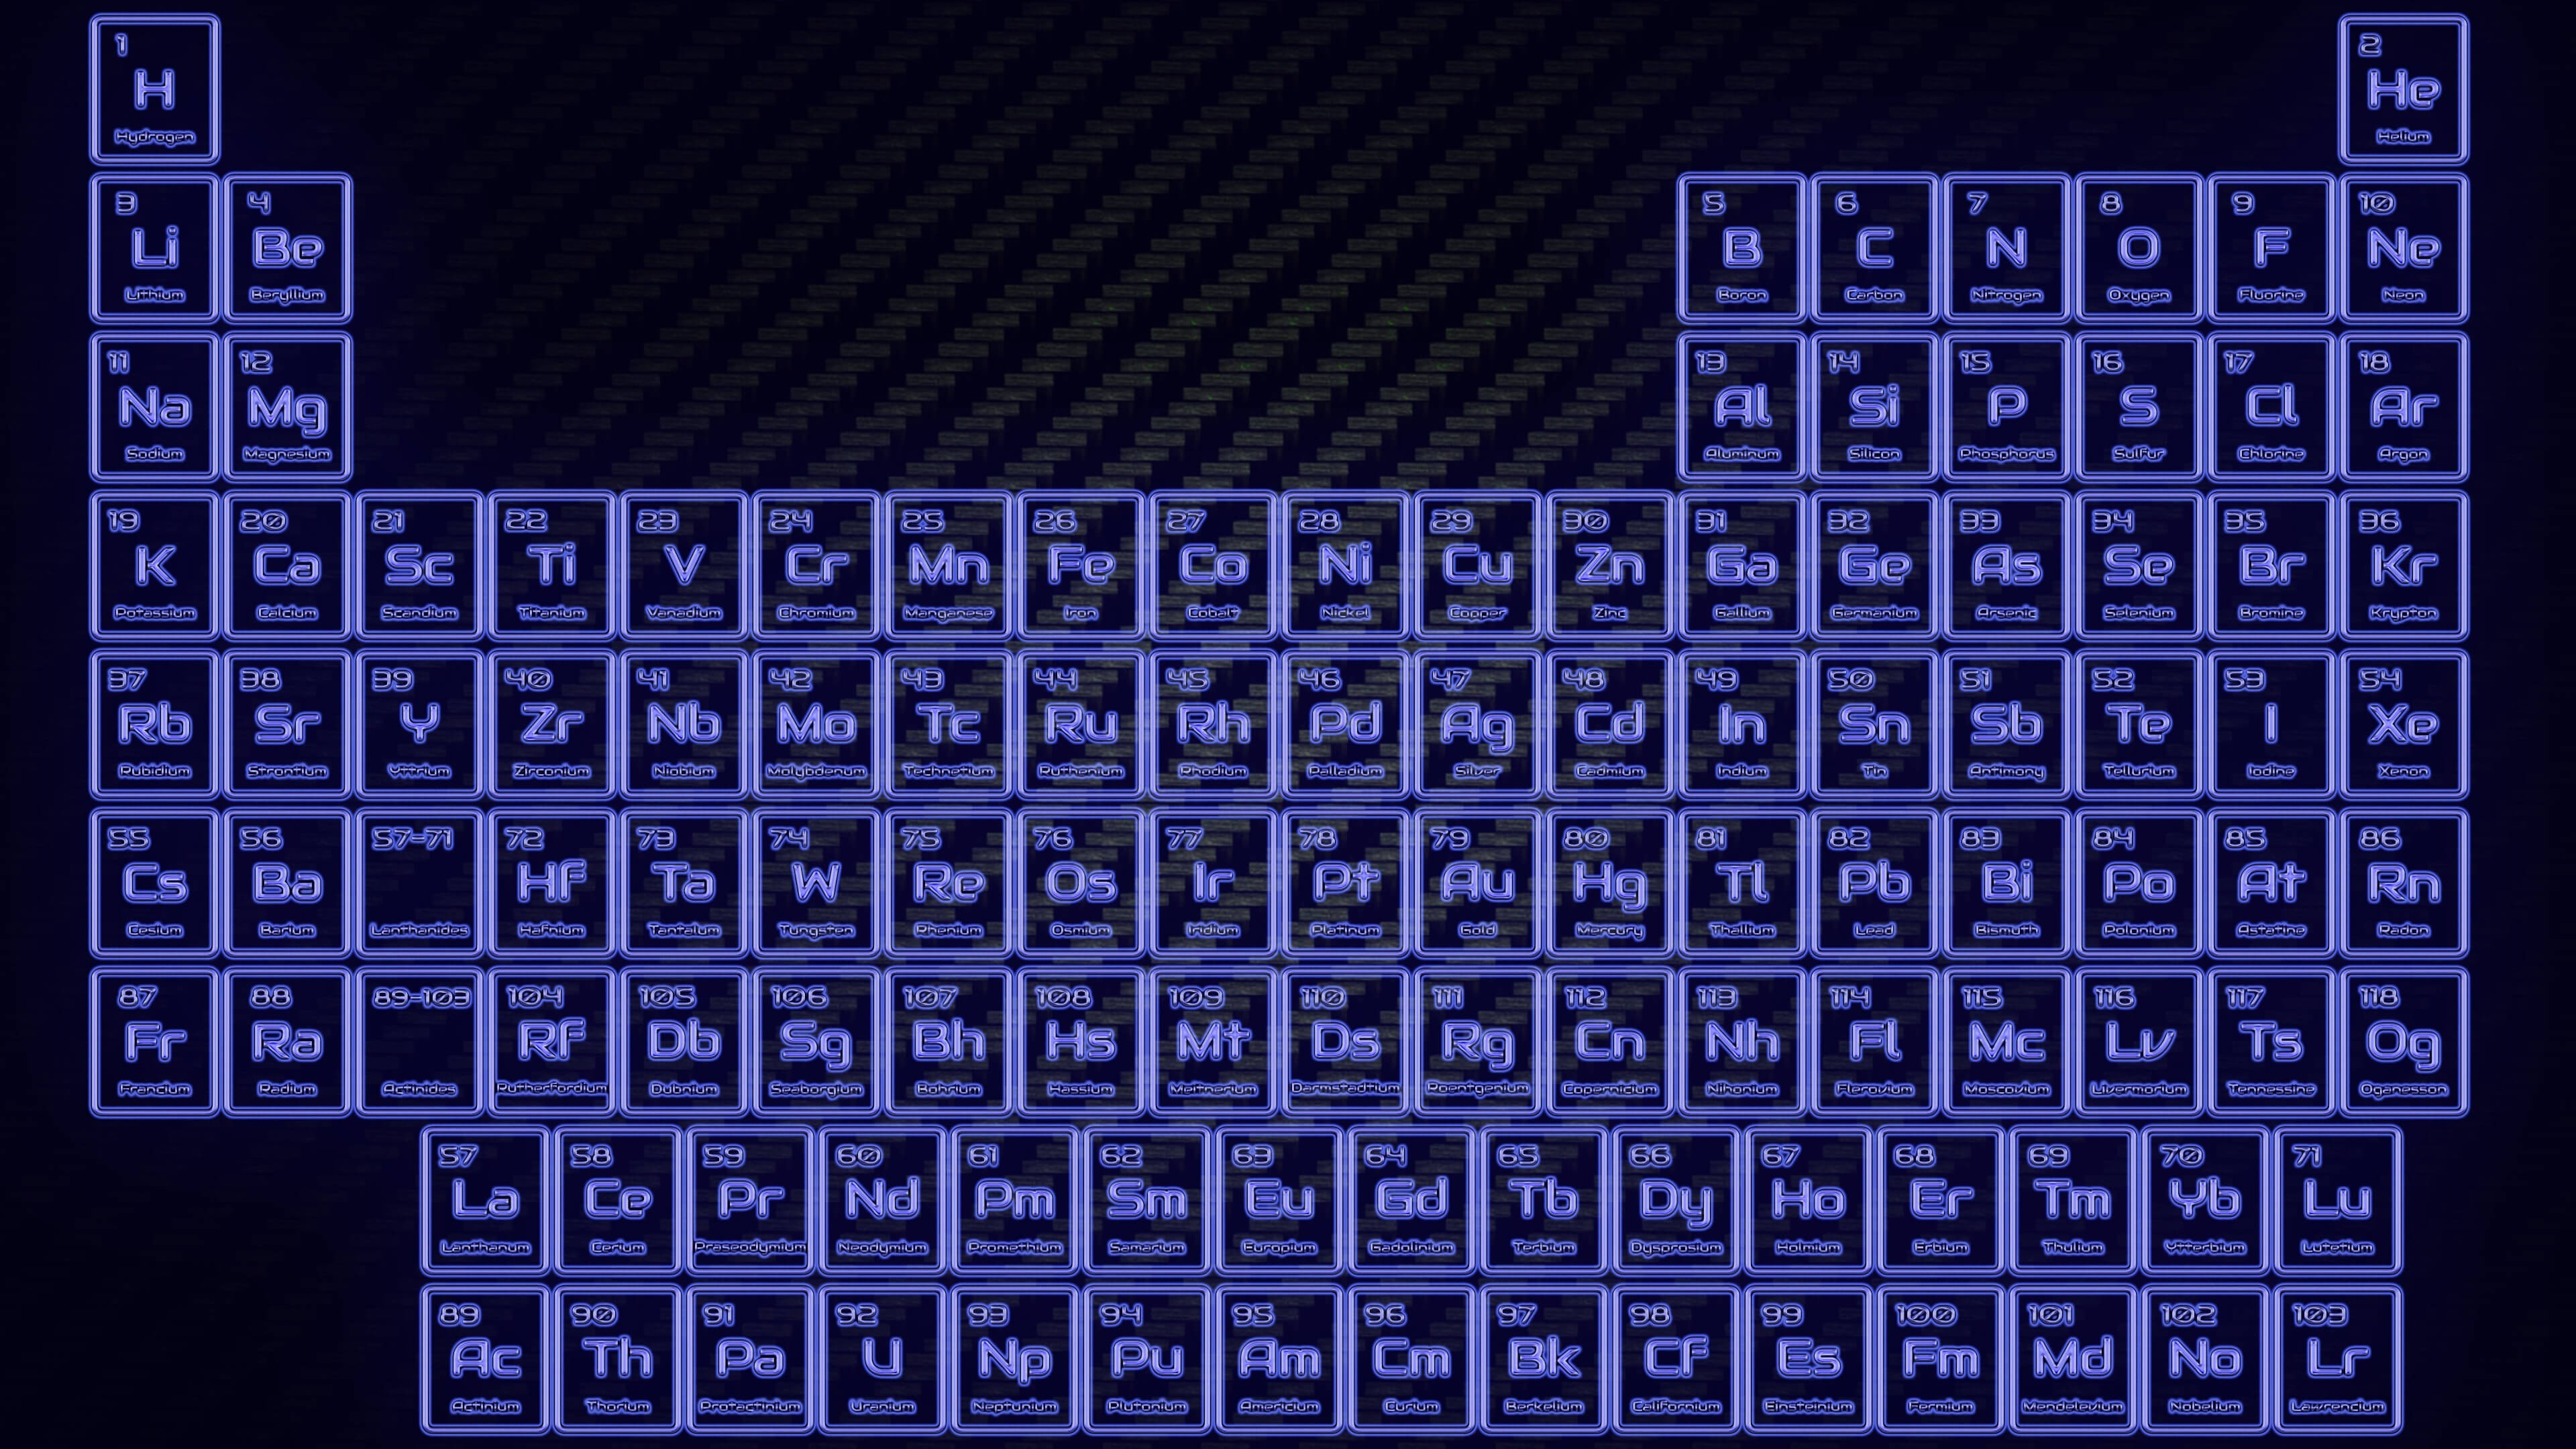 Periodic table of elements desktop wallpapers 76 background pictures 1920x1080 periodic table with elements wallpaper hundresd of documents in our library are totally free to download feel free to download our modern urtaz Choice Image